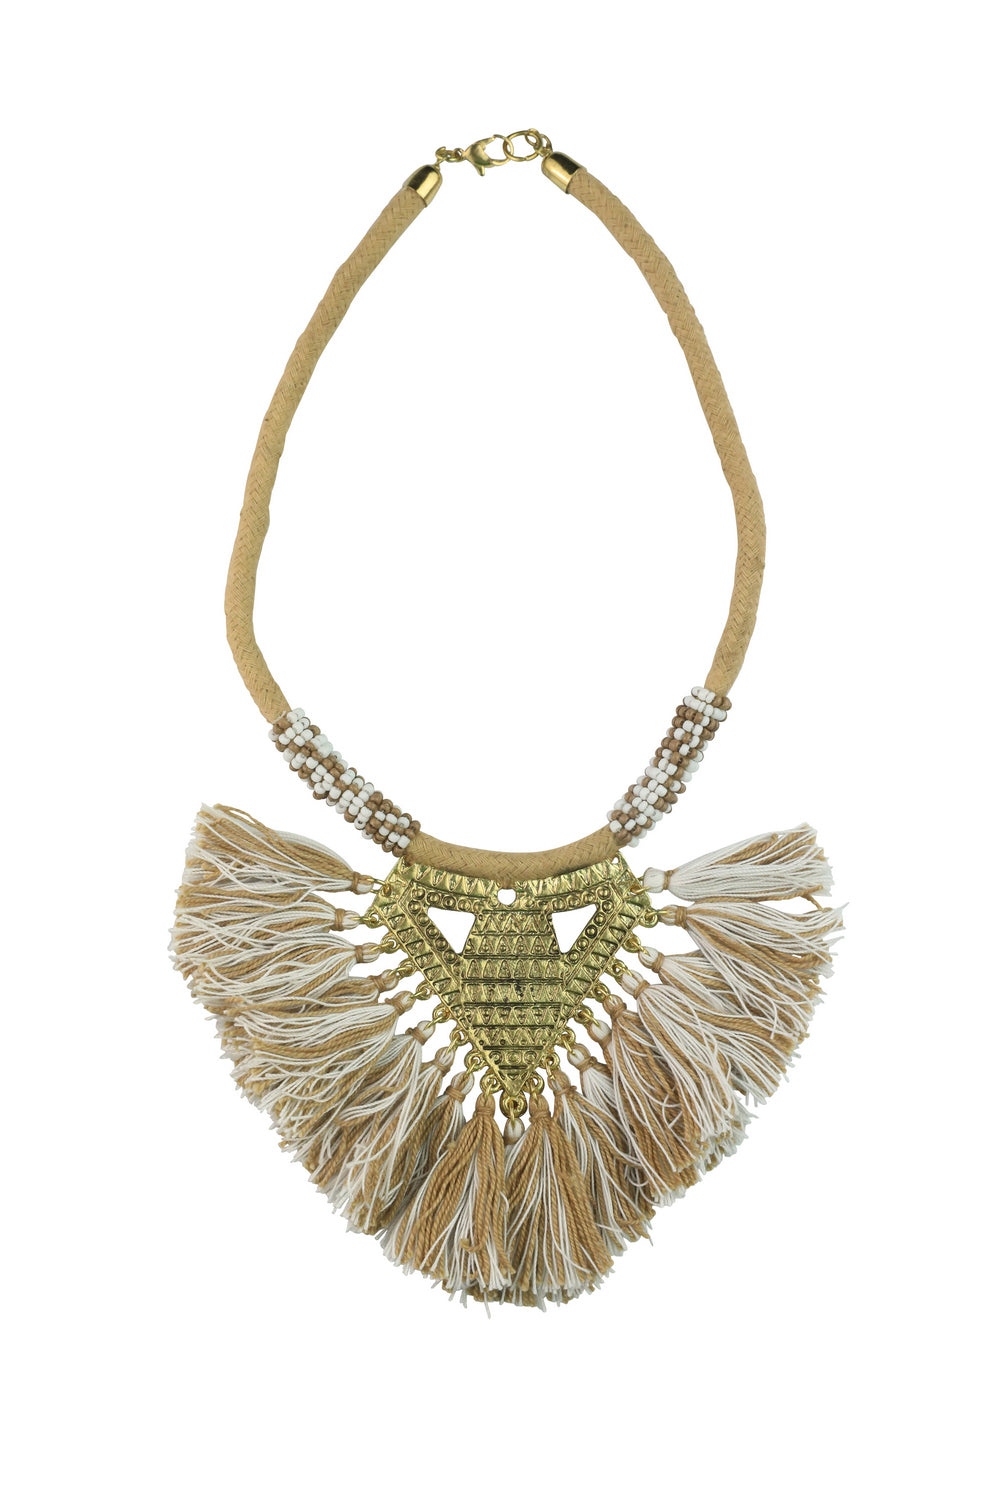 Beaded Boho Tassle Necklace – Natural - Kenzie Tenzie